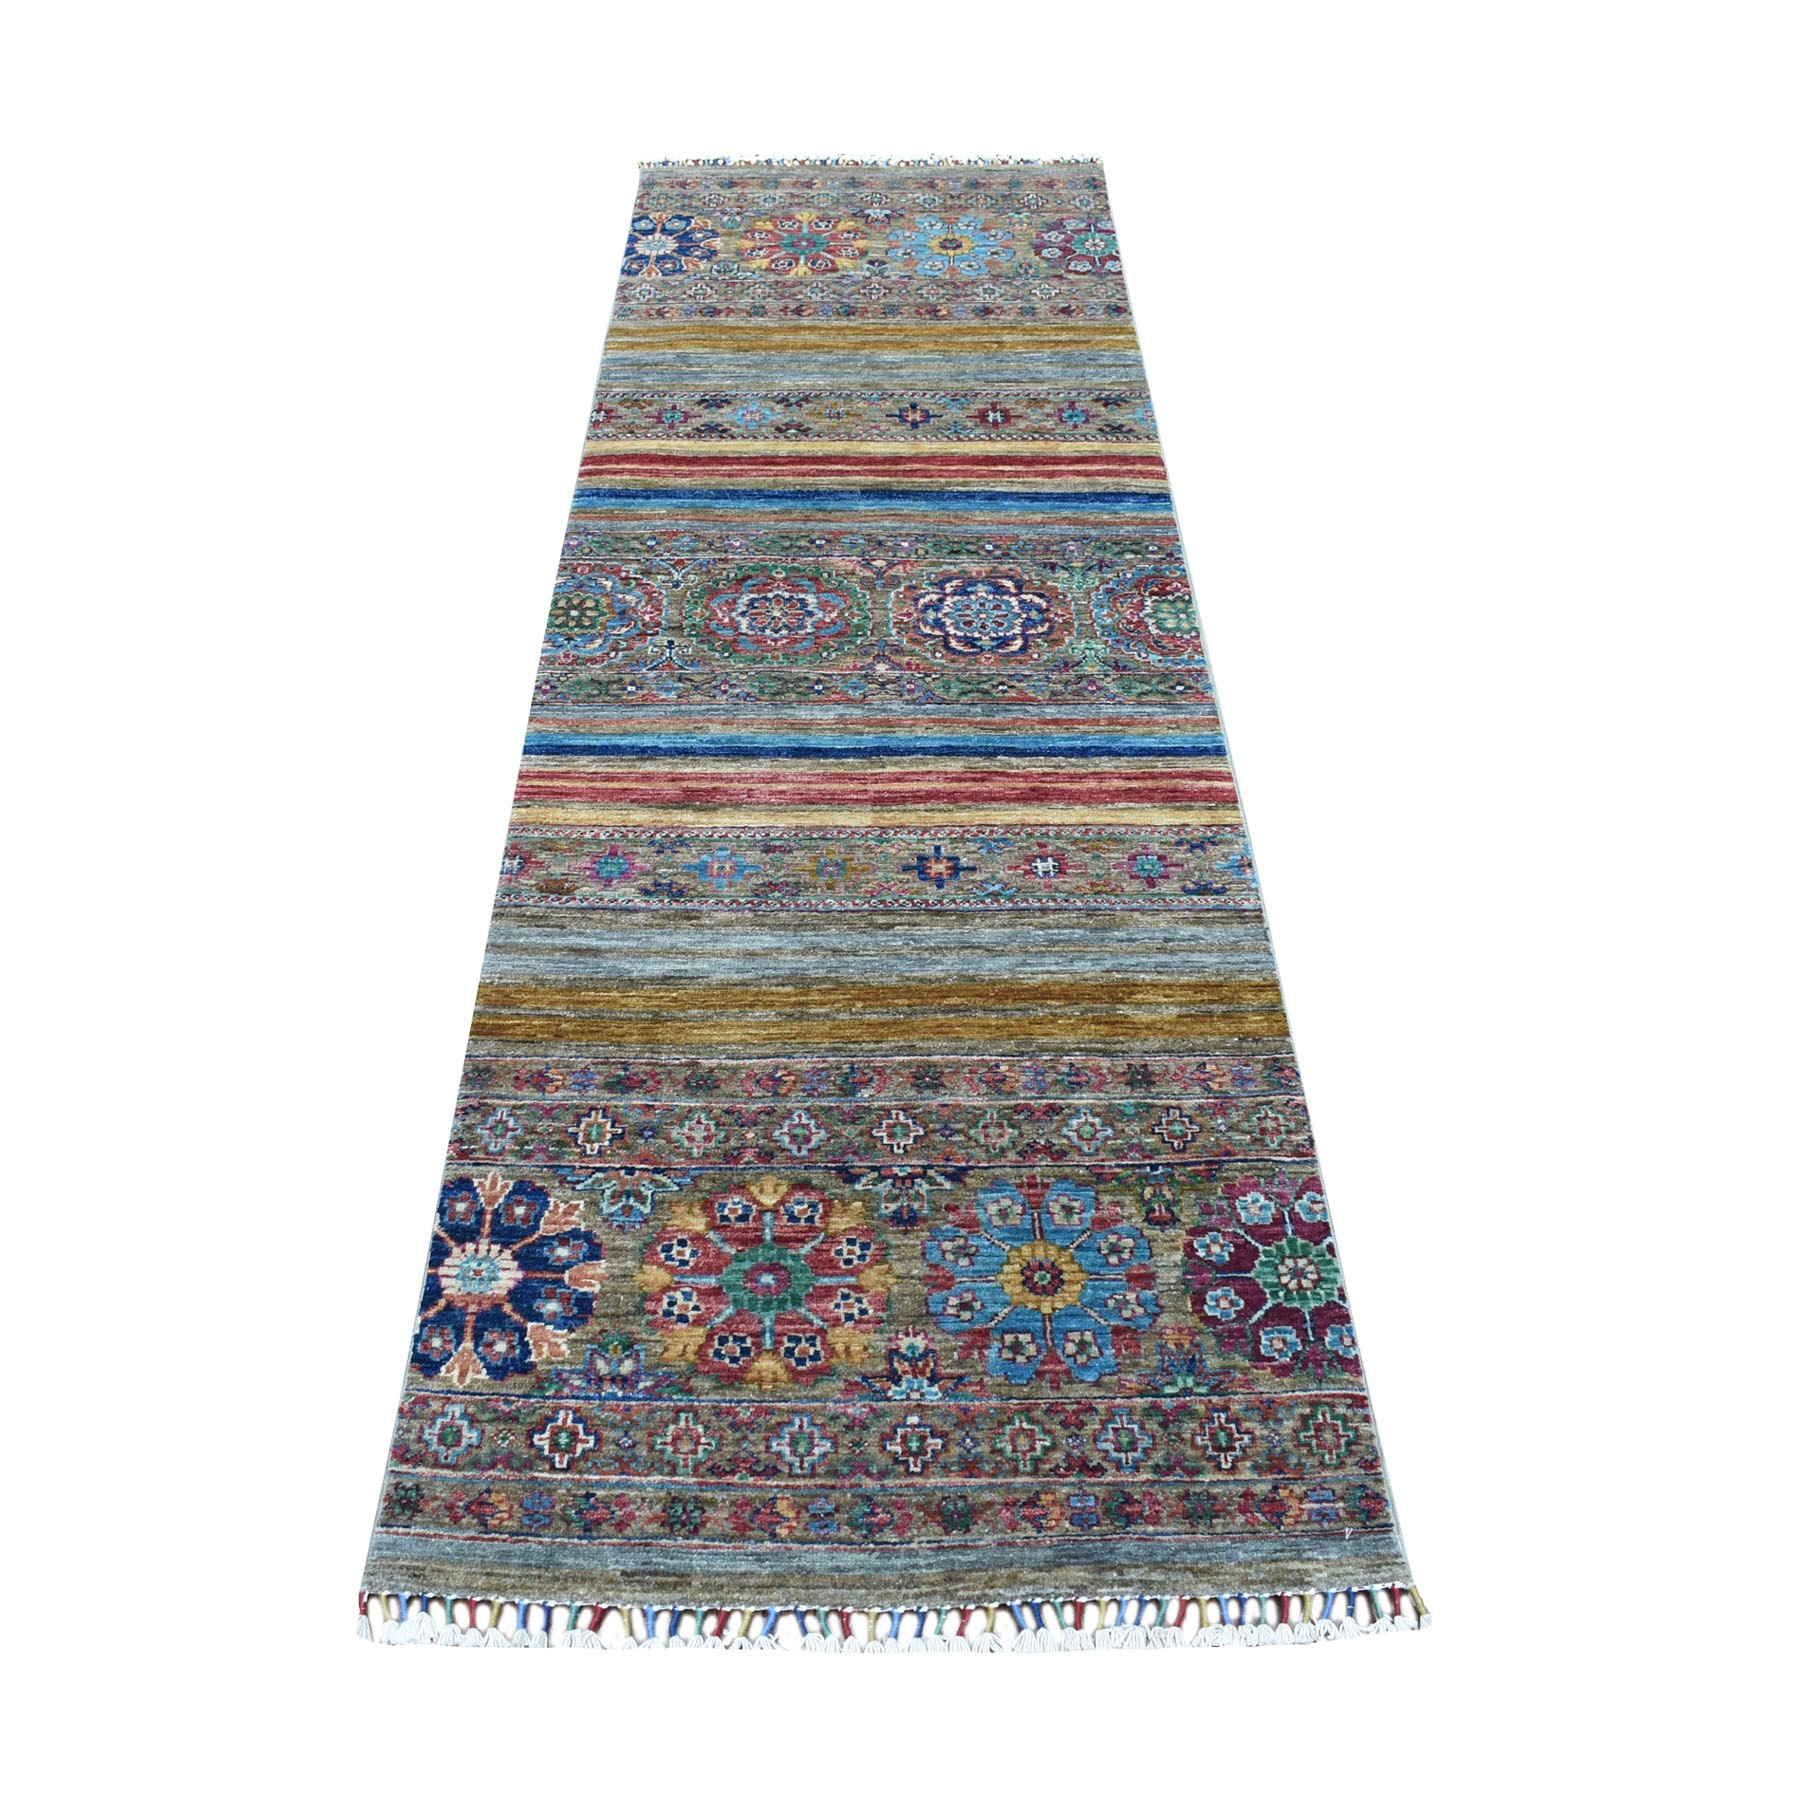 "2'7""x8' Gray Super Kazak Khorjin Design With Colorful Tassels Hand Knotted Vibrant Wool Oriental Runner Rug"